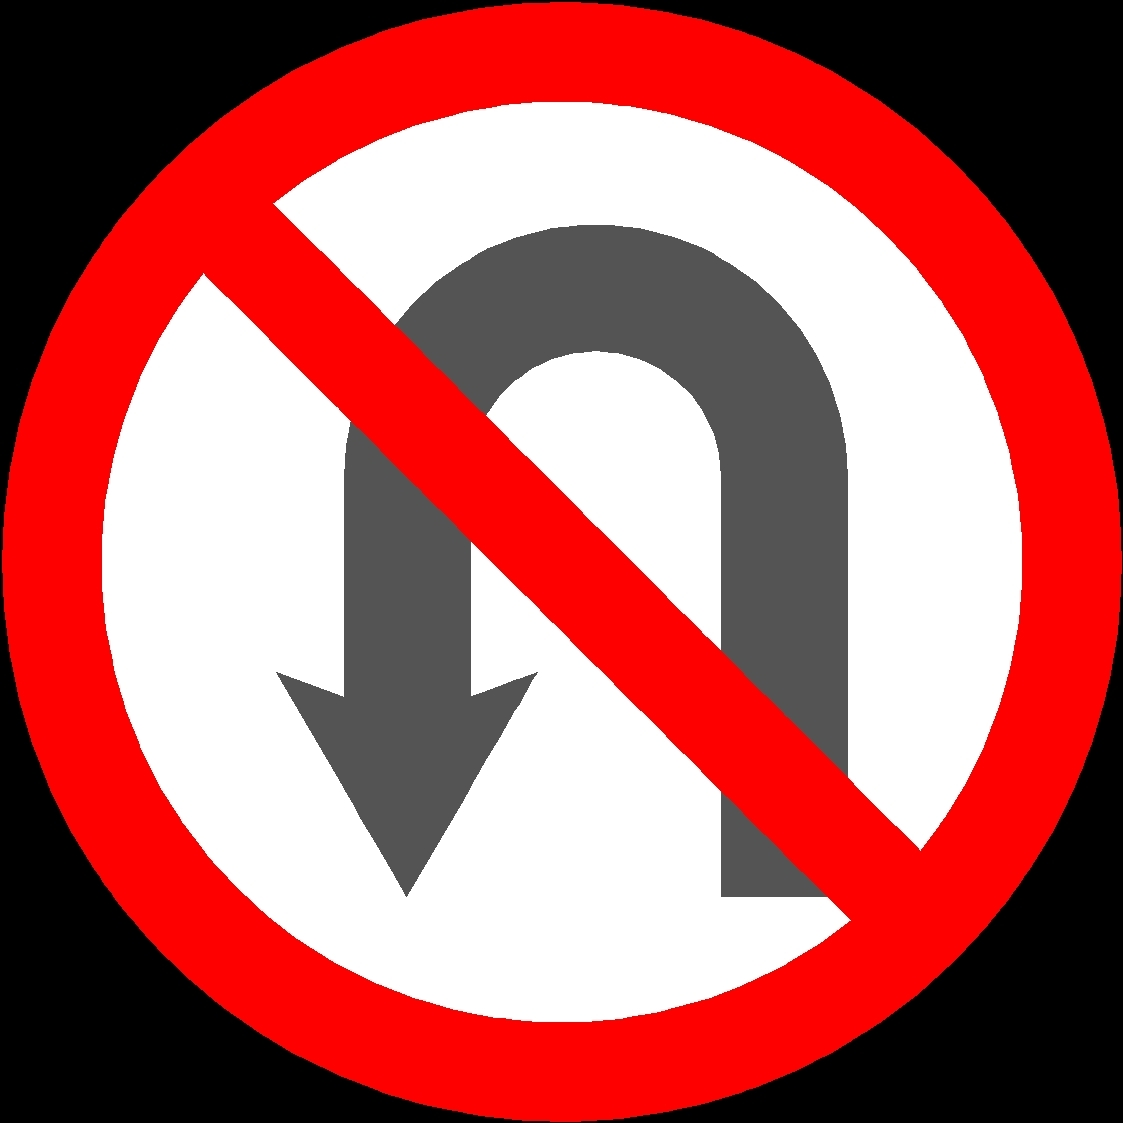 Road Signs And Symbols, Speed Limits--Brazil DWG Block for ...Symbols